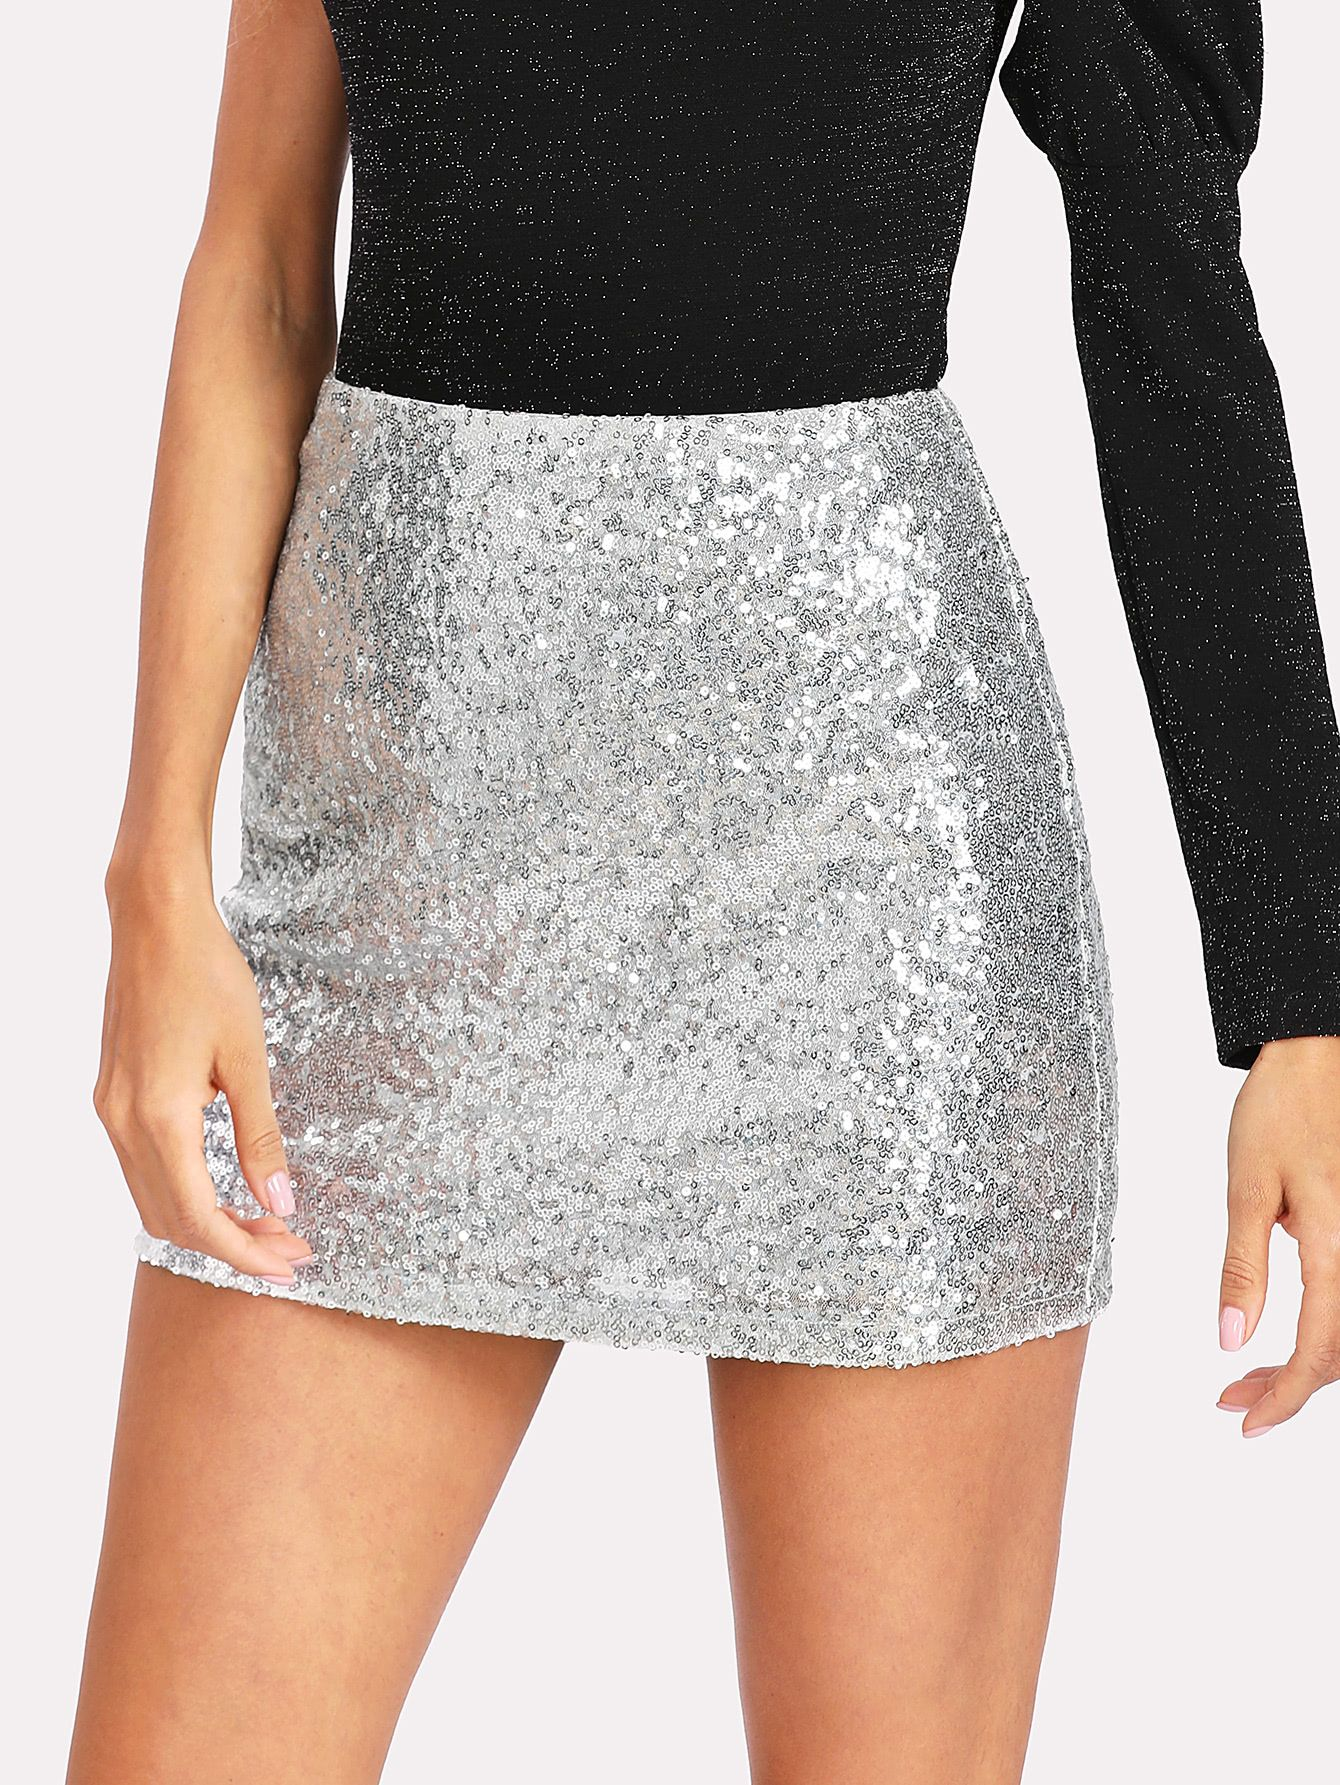 34a1fab31e Online shopping for Metallic Sequin Skirt from a great selection of women's  fashion clothing & more at MakeMeChic.COM.